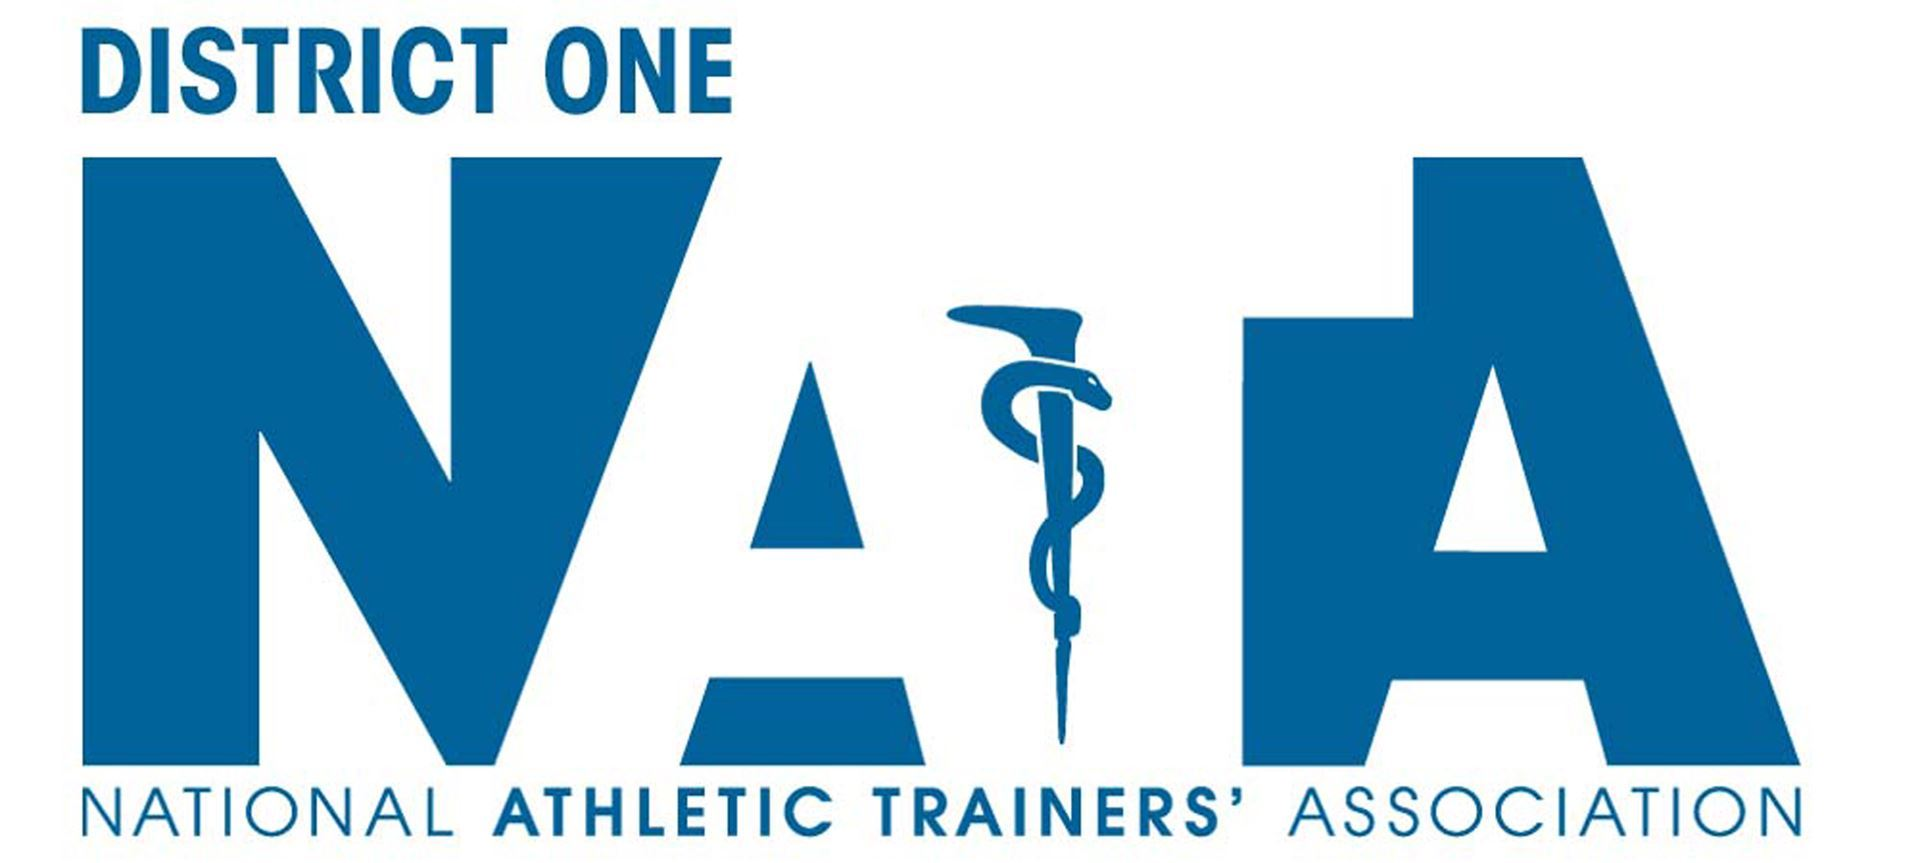 Athletic trainers of massachusetts links resources district 1 national athletic trainers association 1betcityfo Choice Image